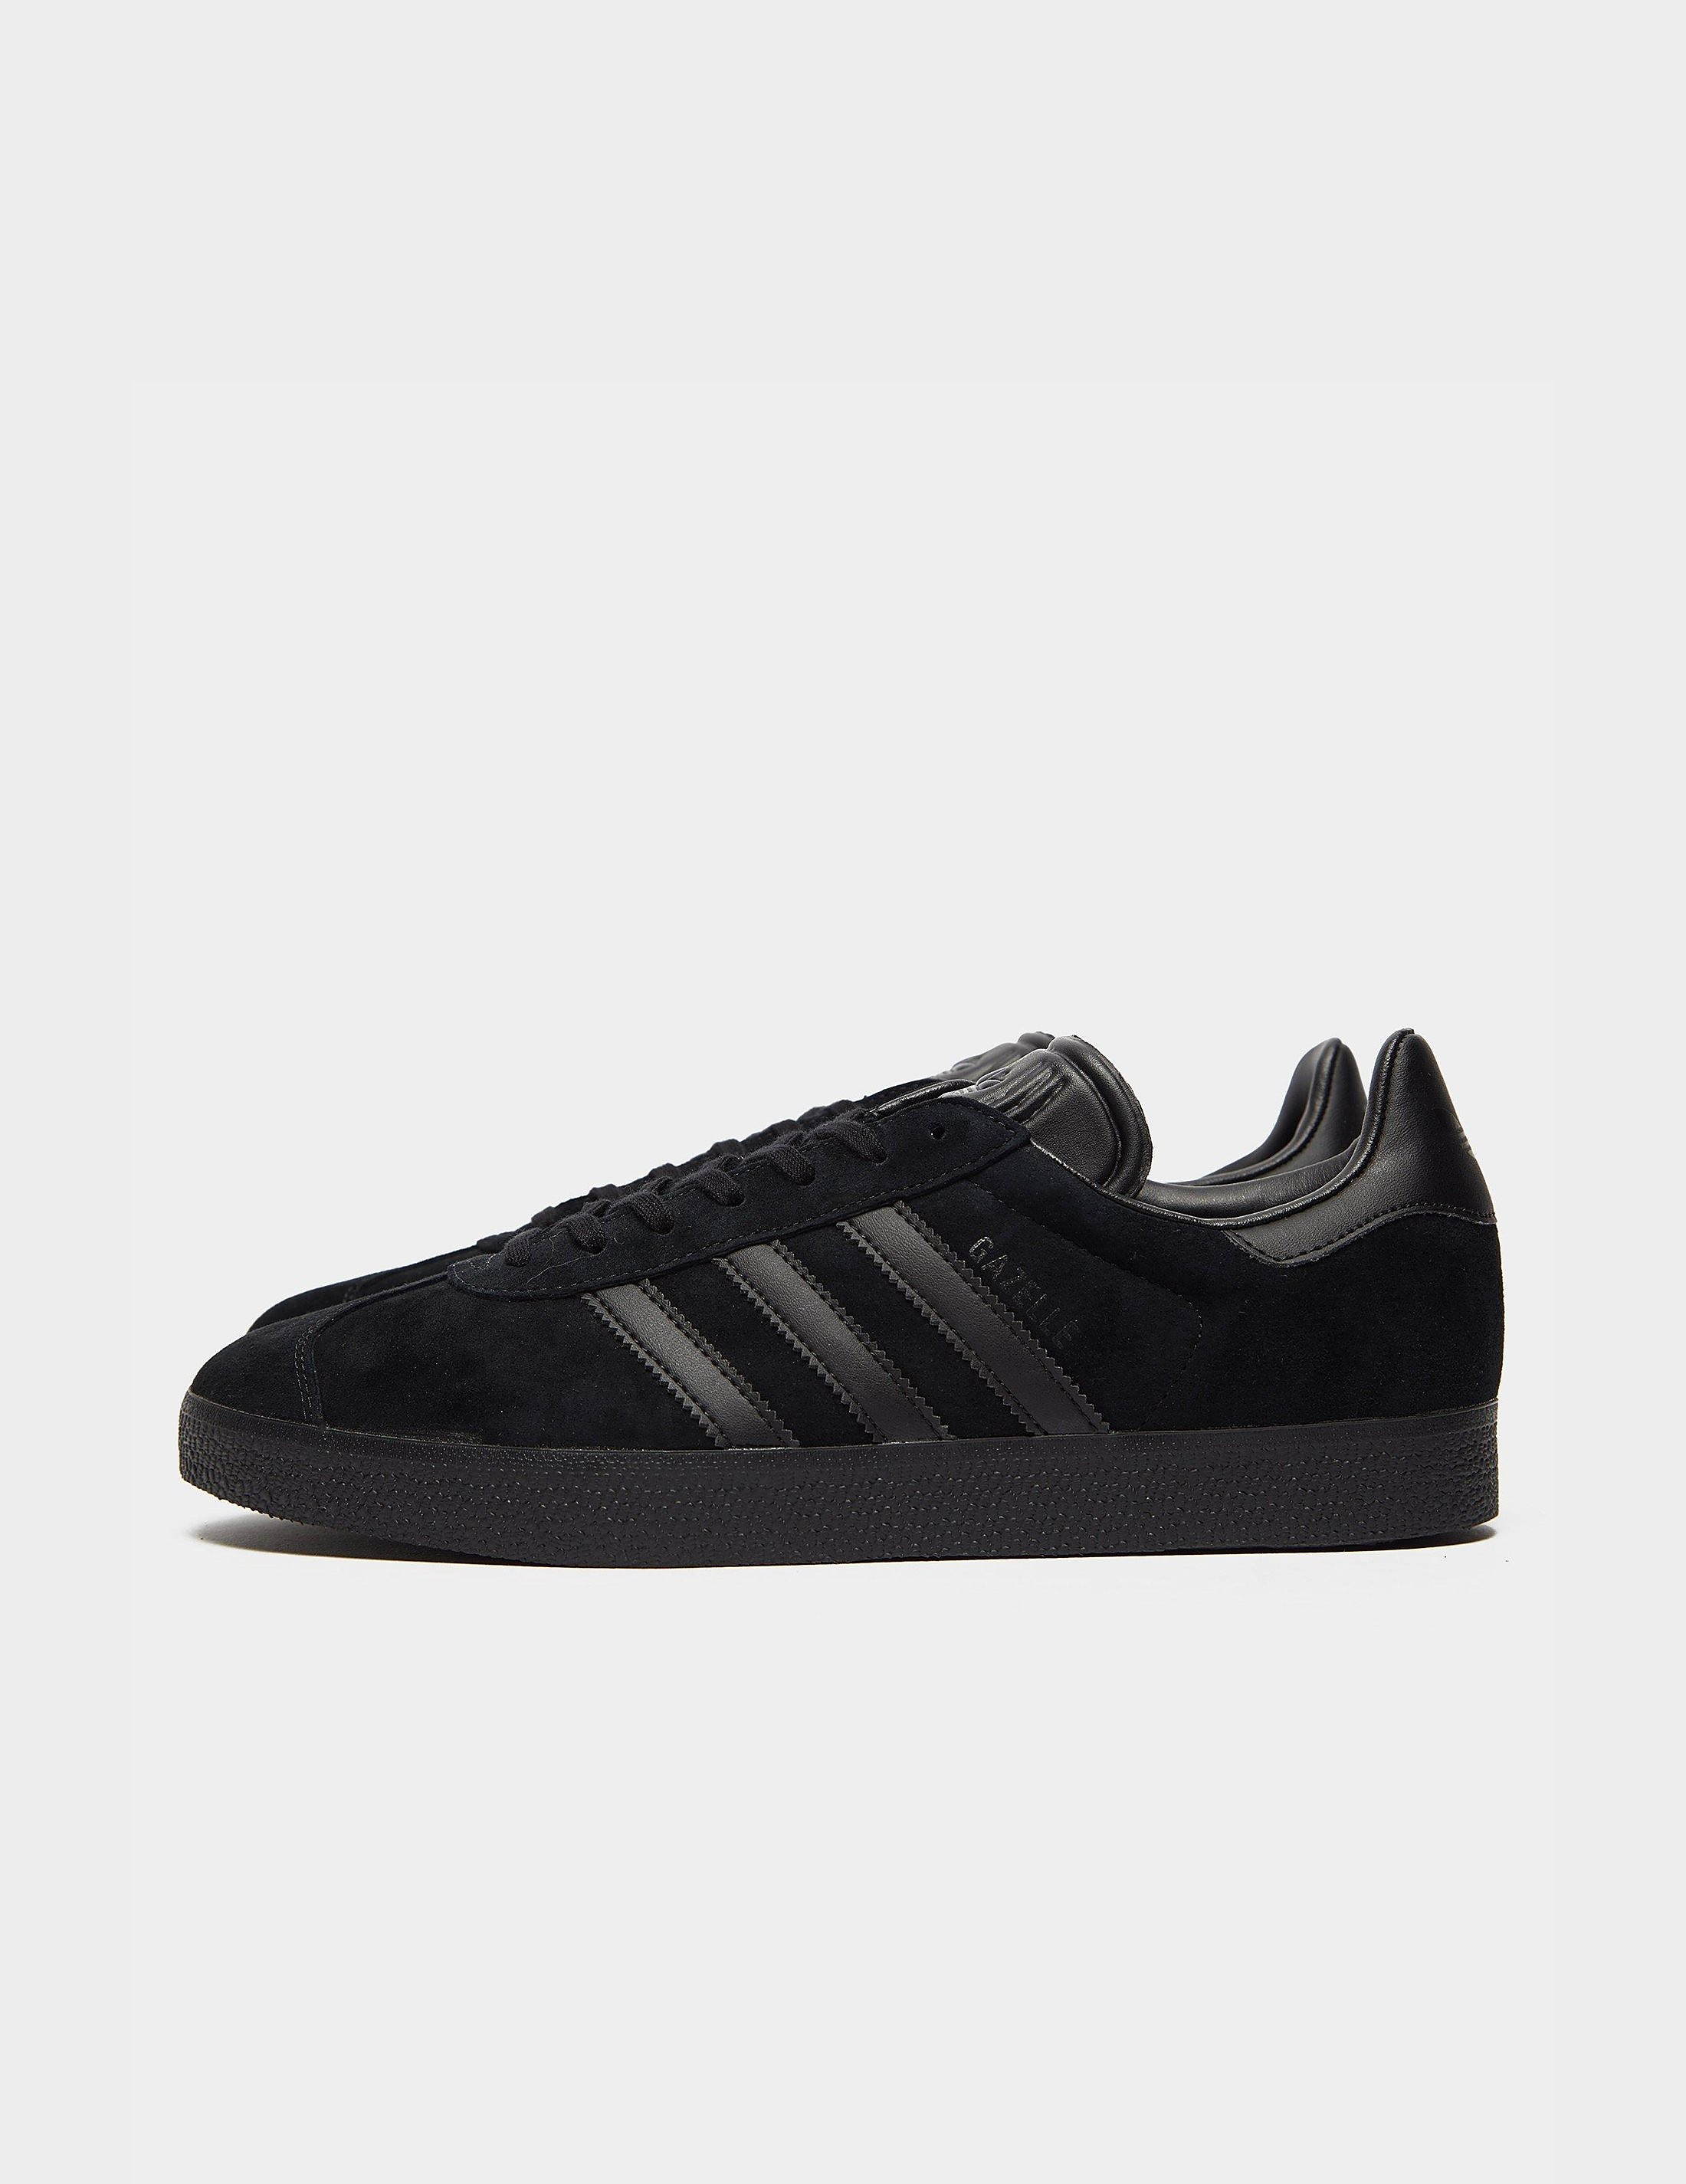 the best attitude b818a 9c8f2 Mens adidas Originals Gazelle Black, Black